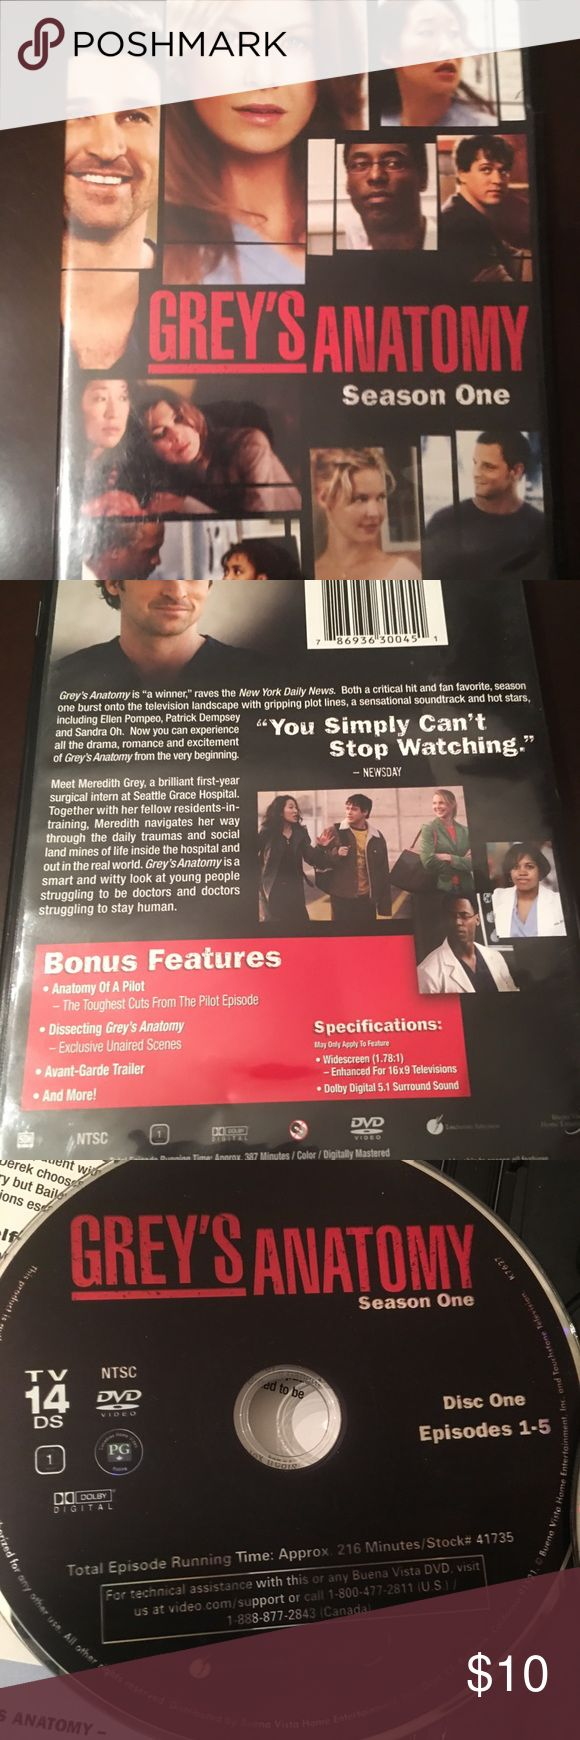 Grey's Anatomy season 1 Complete UNCUT First Season of Grey's Anatomy   9 episodes. Perfect condition. Grey's Anatomy Other